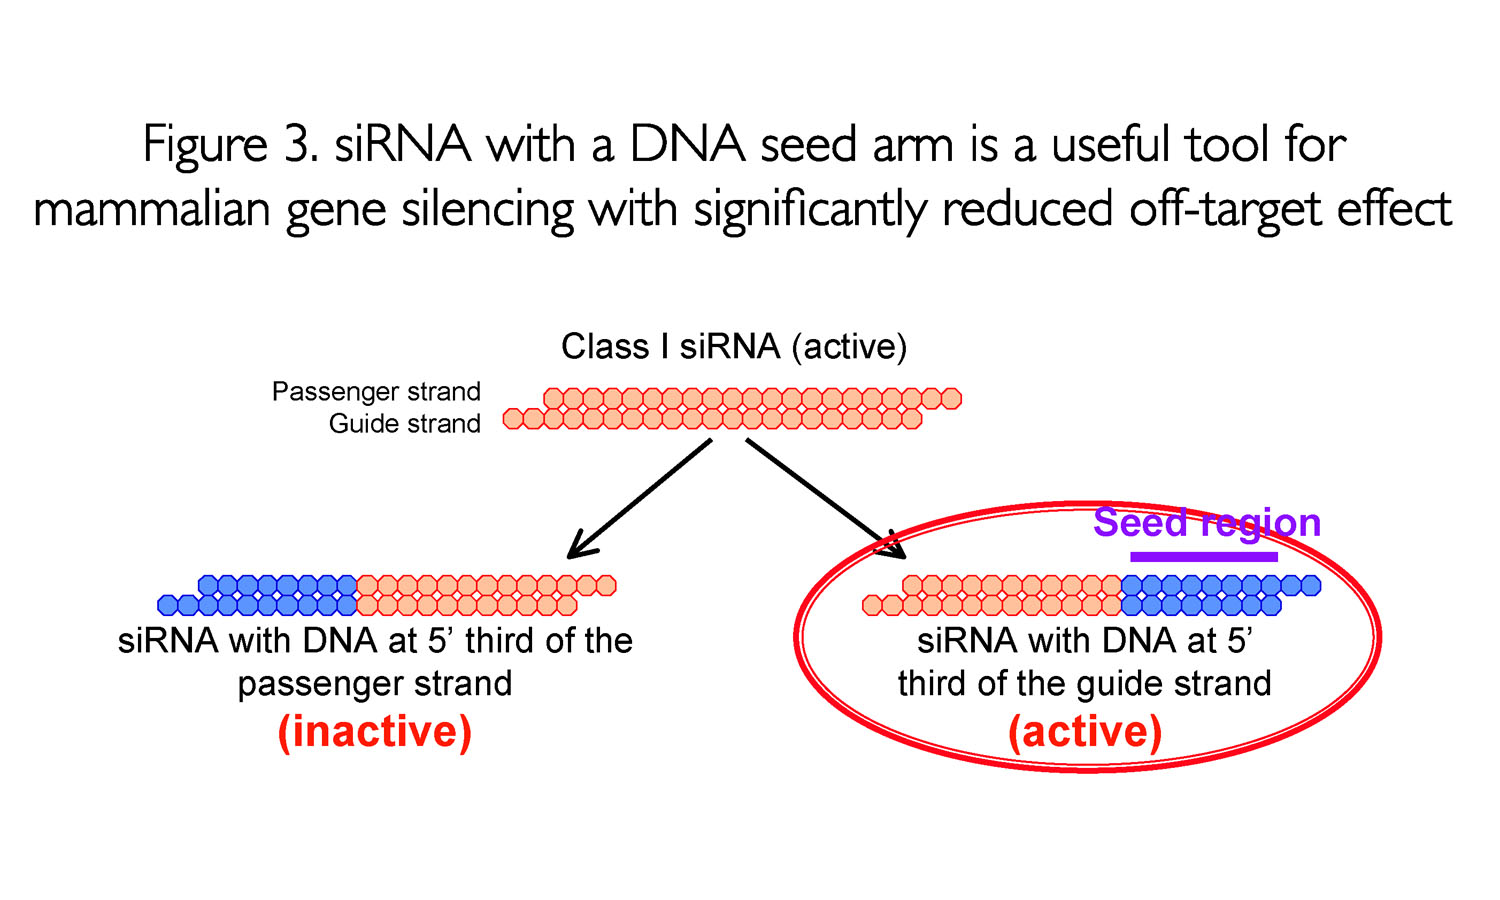 siRNA with a DNA seed arm